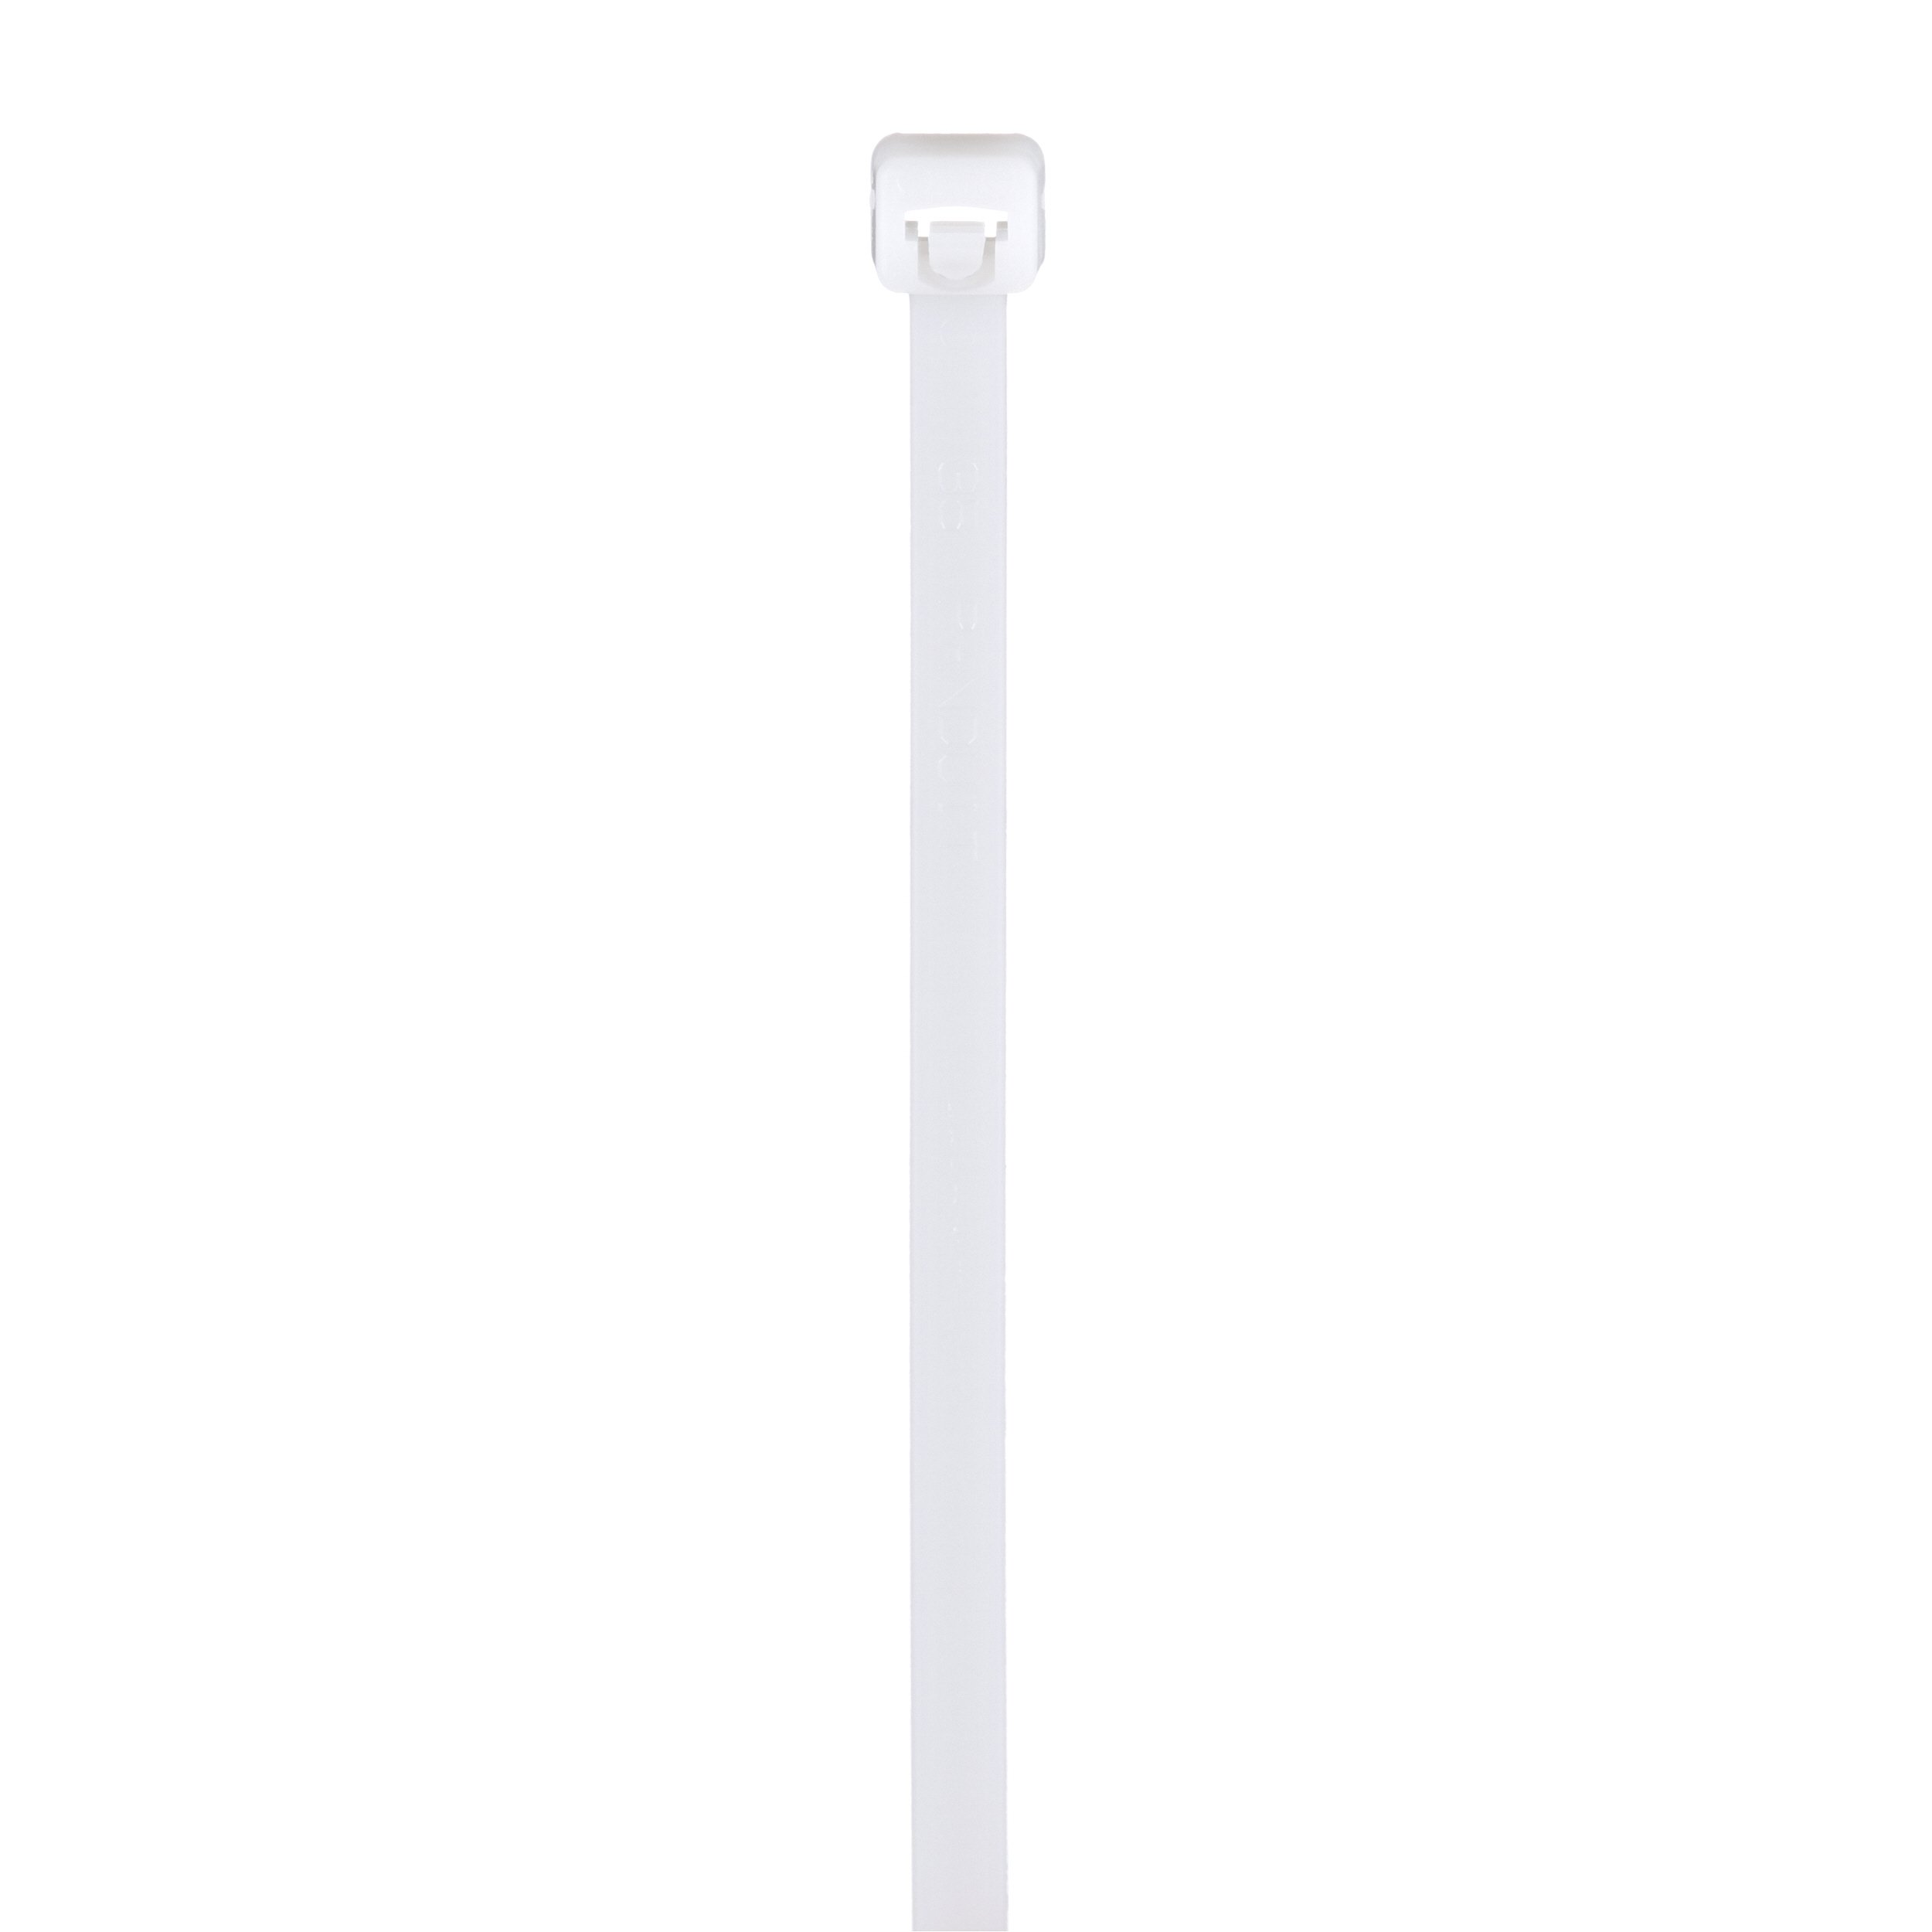 Panduit PRT3S-M Cable Tie, Releasable, Standard, Nylon 6.6, 11.5-Inch Length, Natural (1,000-Pack)